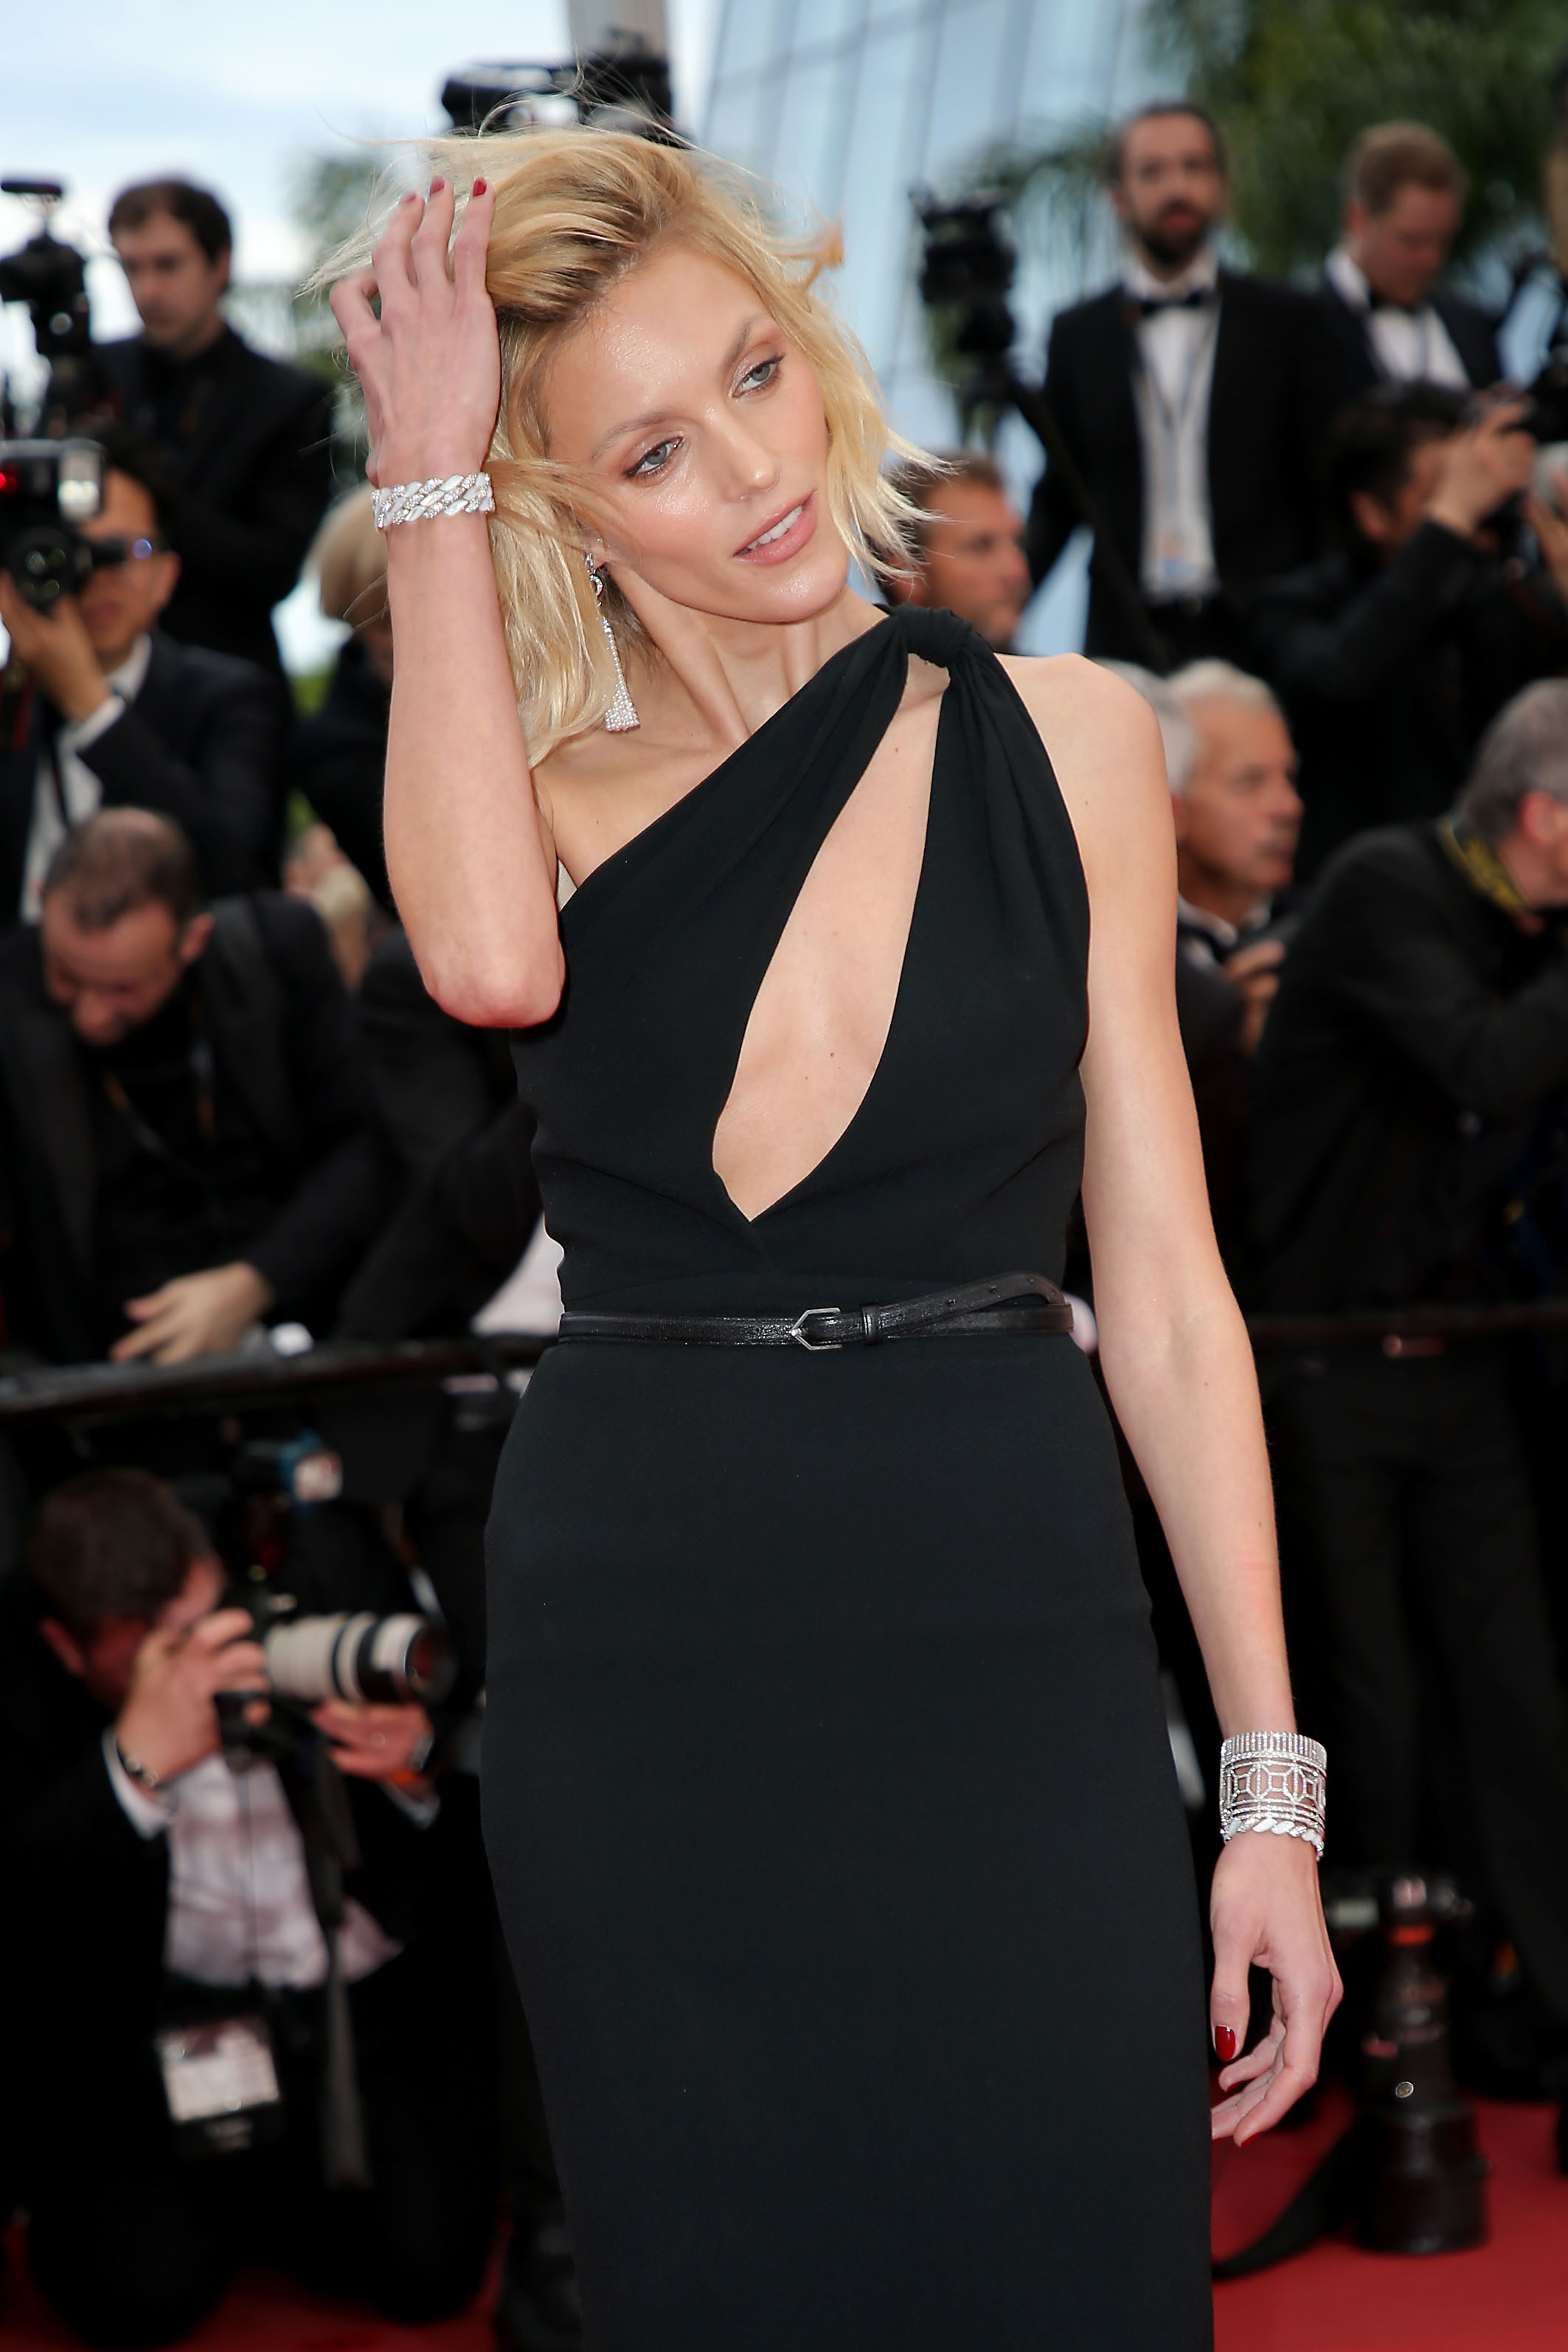 72th Film Festival of Cannes. Red Carpet